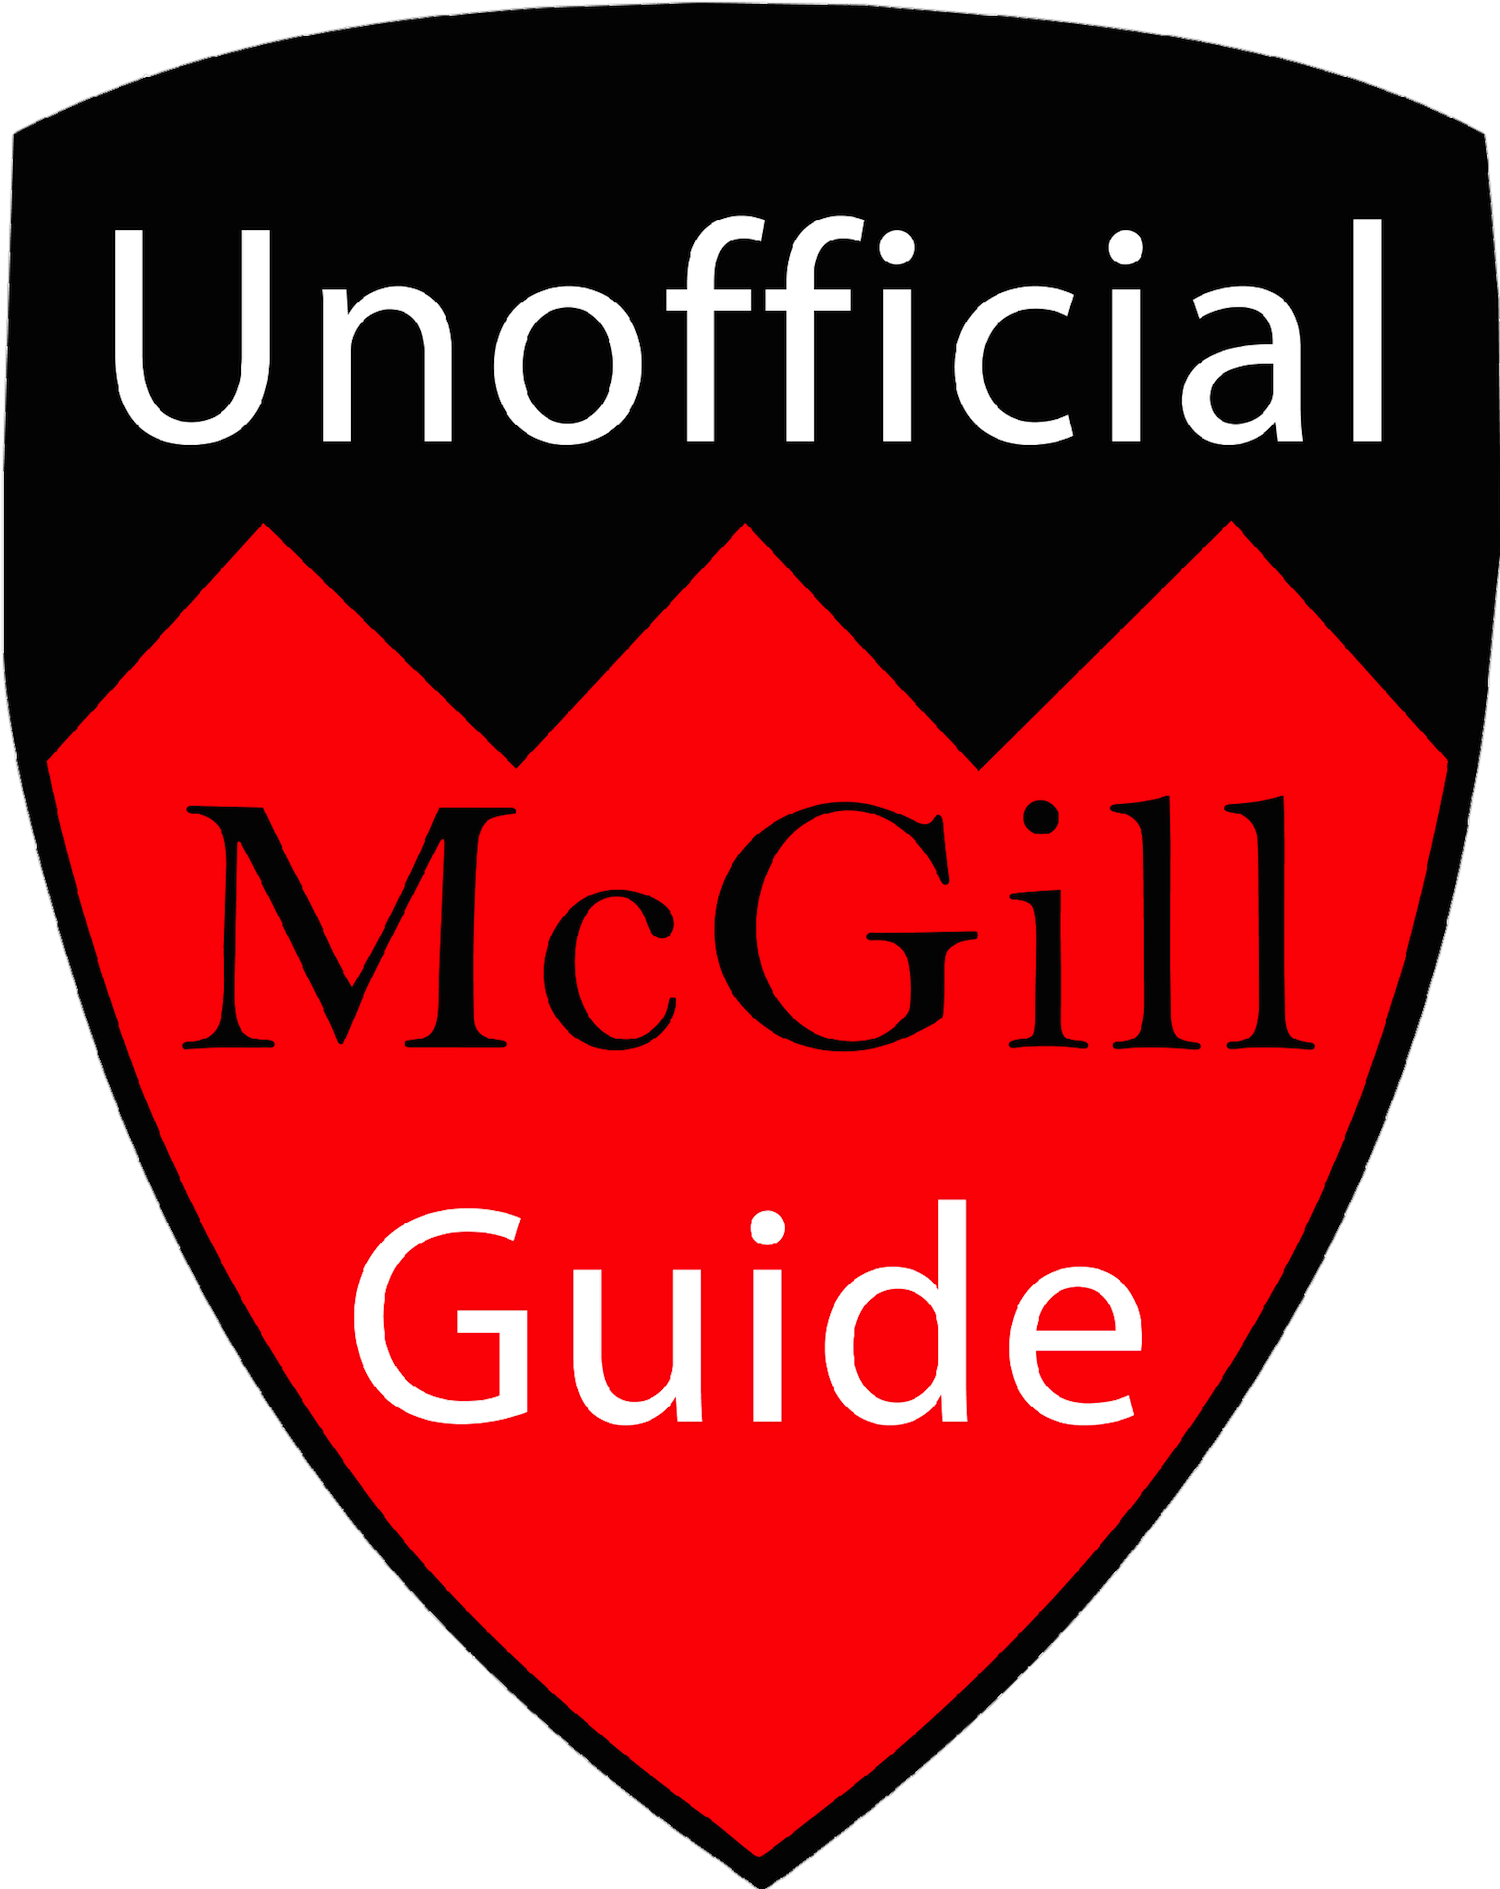 Unofficial McGill Guide